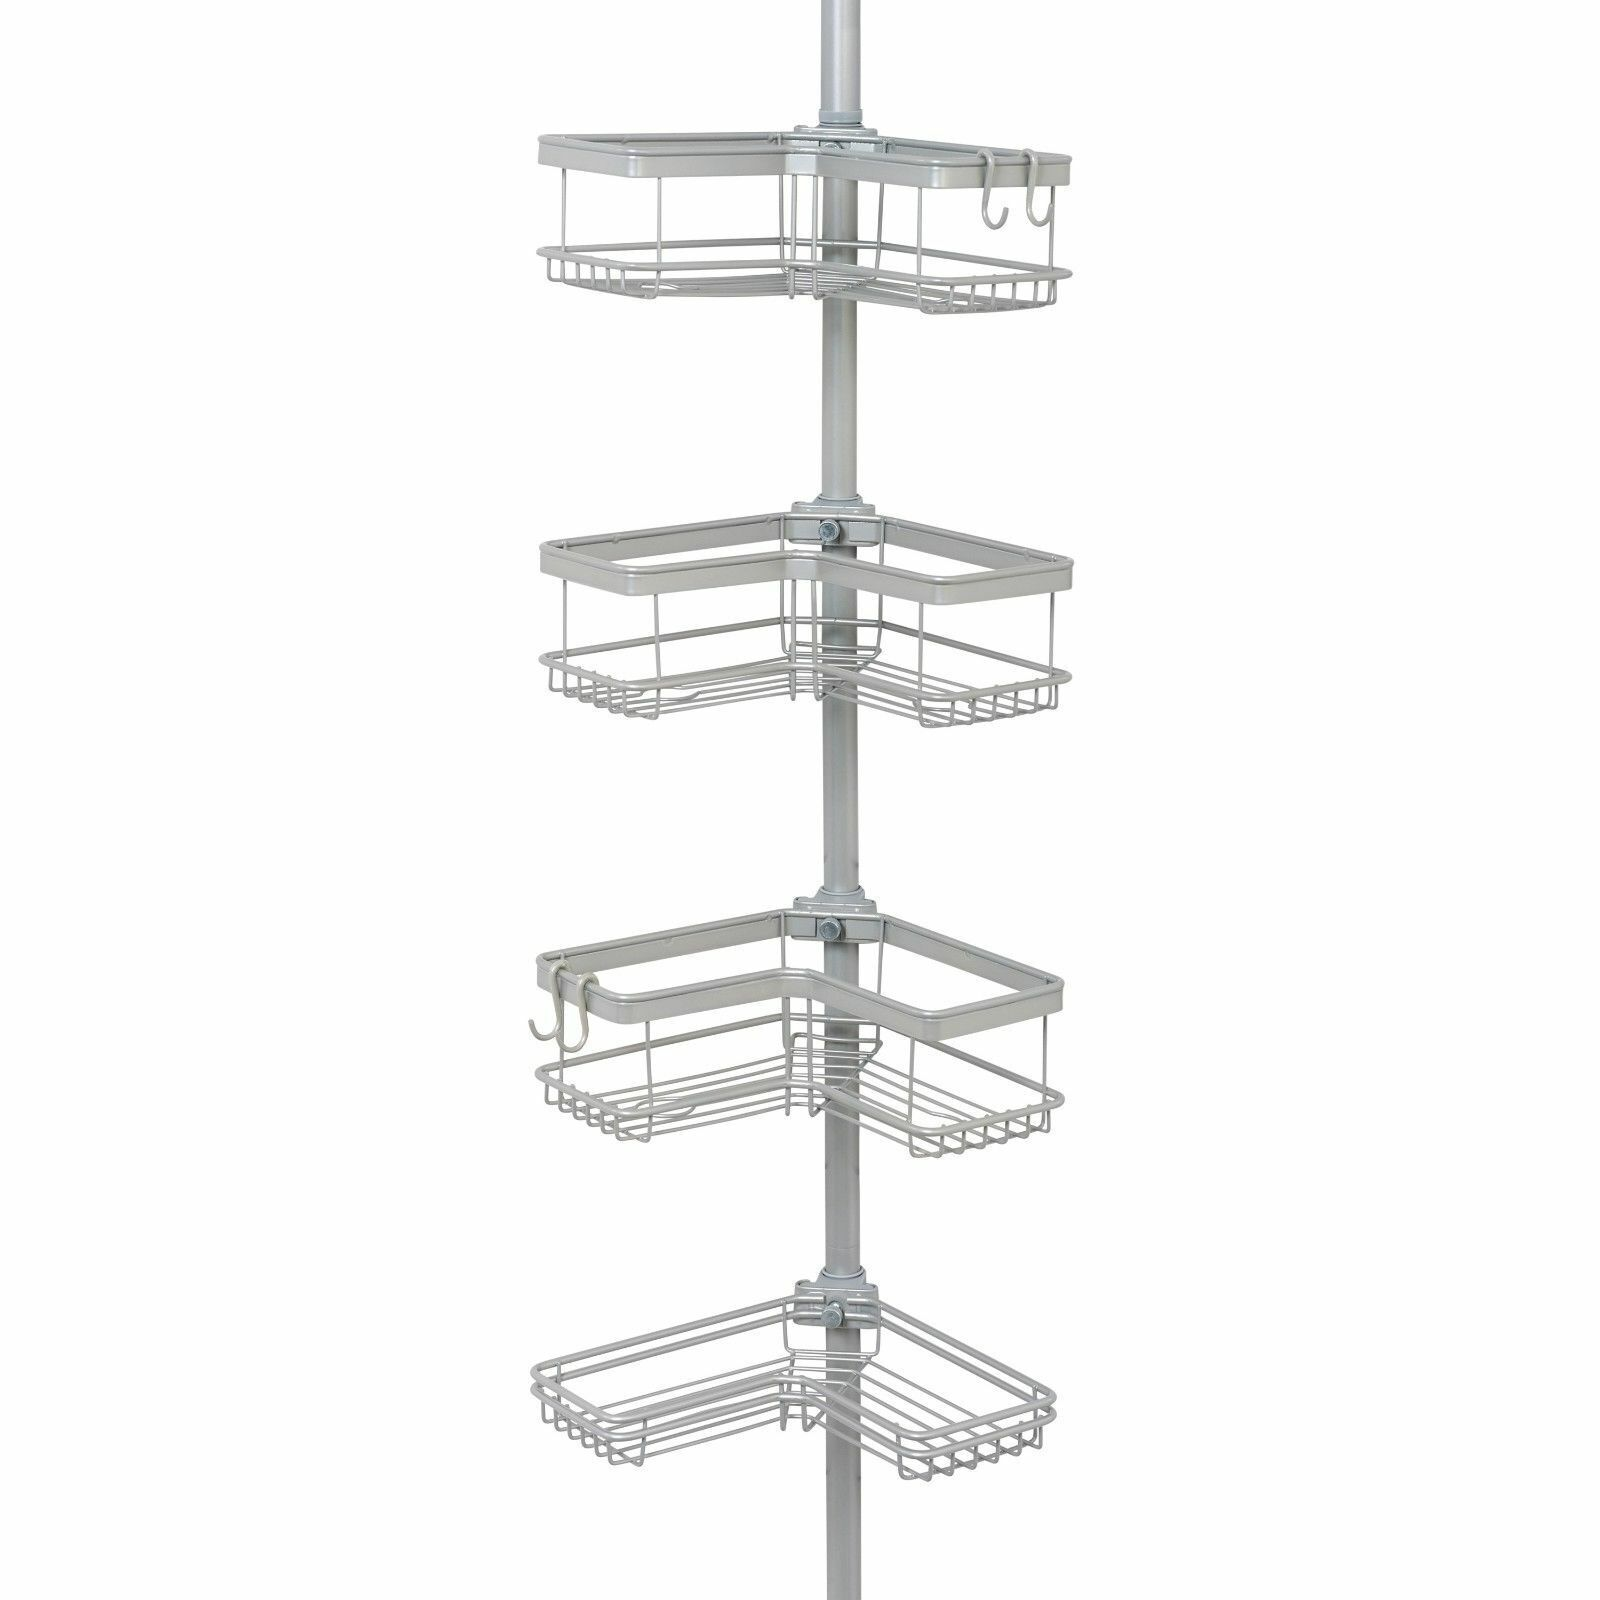 Better Homes Gardens Contoured Tension Pole Shower Caddy